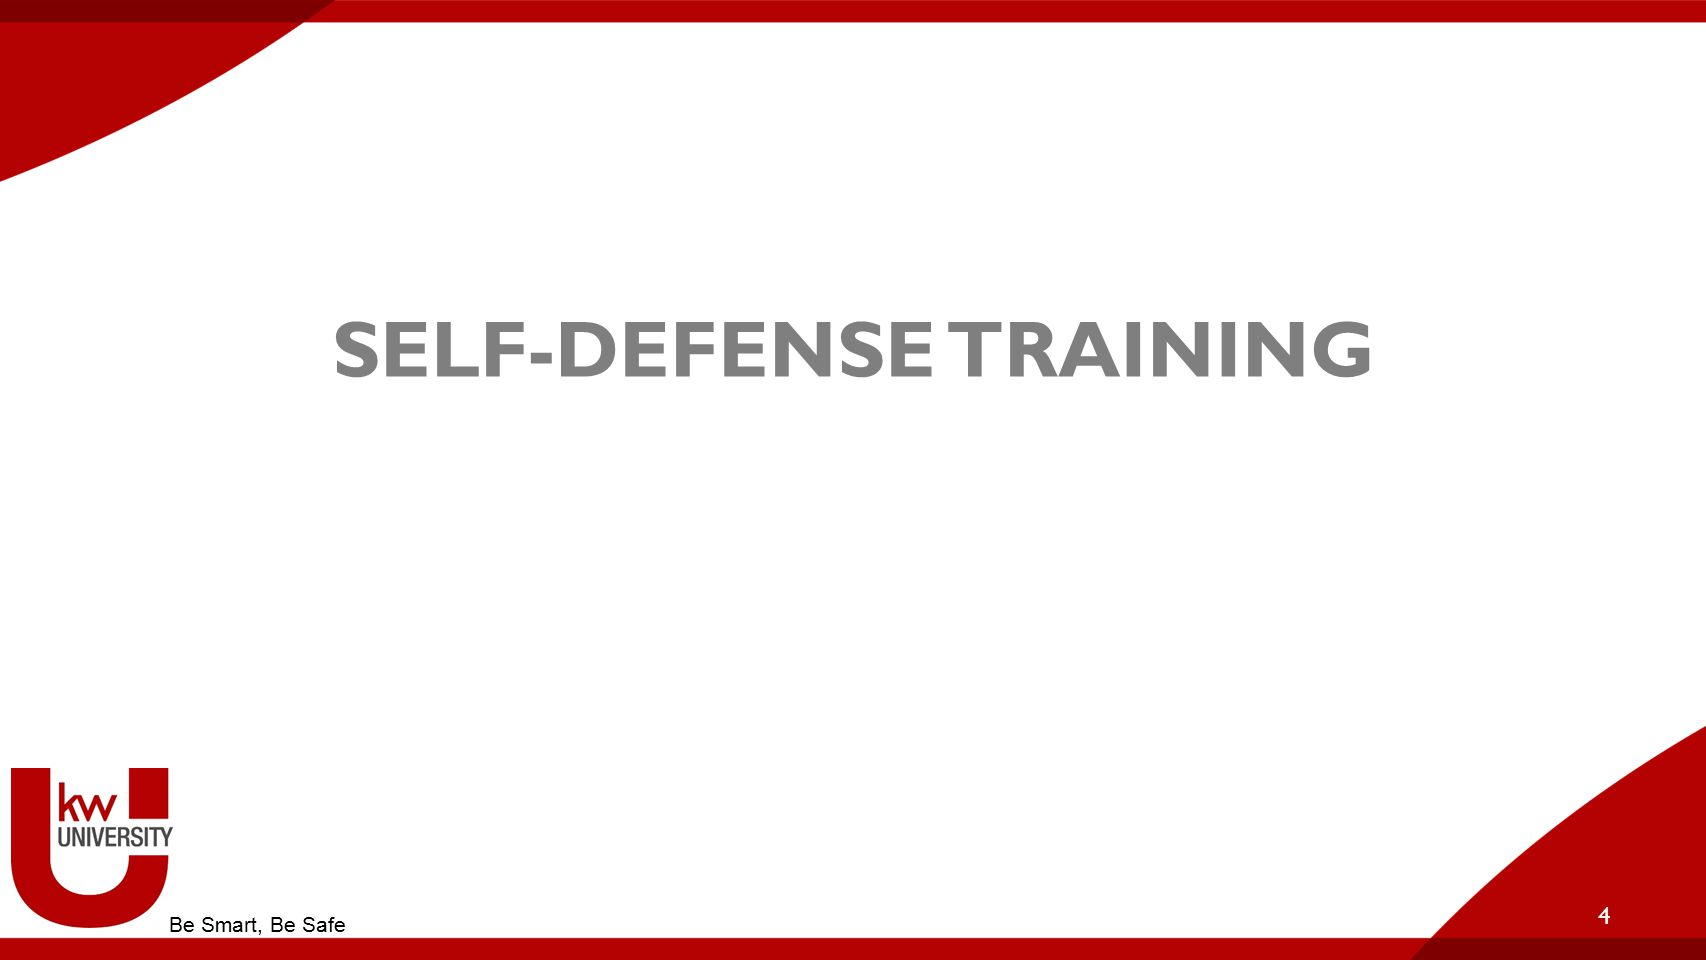 4 SELF-DEFENSE TRAINING Be Smart, Be Safe